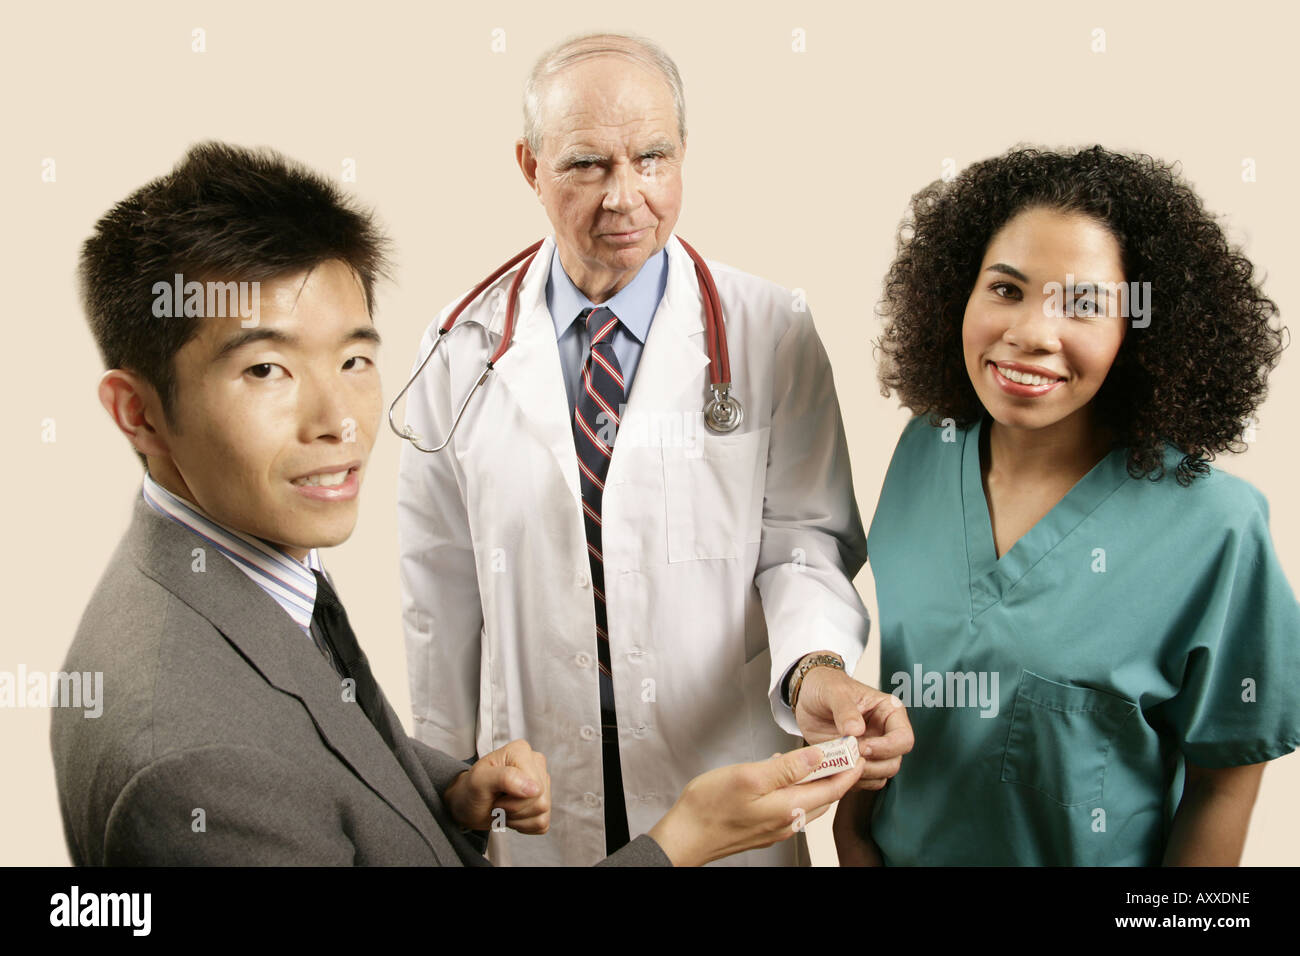 Sales rep agrees to terms with his customer, the chief medical office of the clinic (played by models). - Stock Image